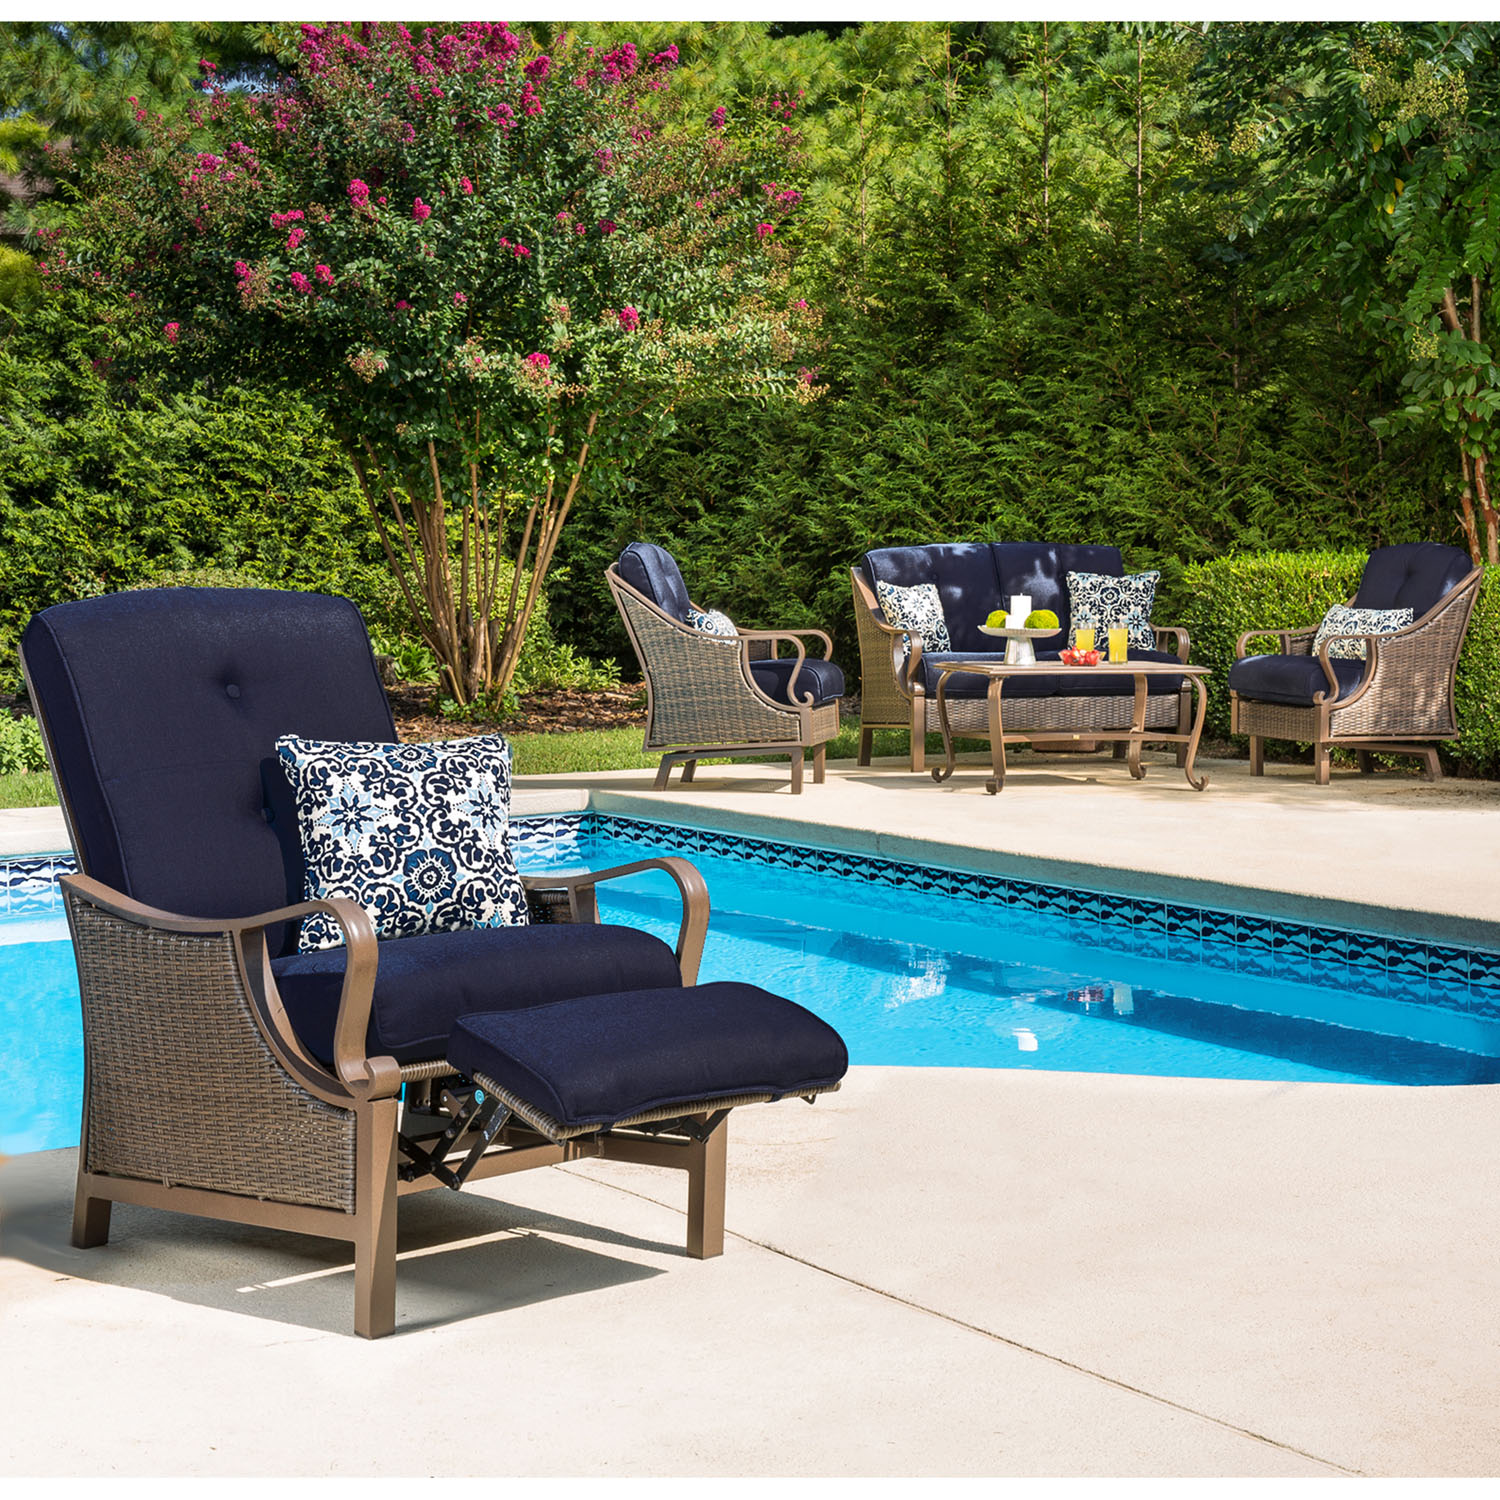 Hanover Ventura Outdoor Luxury Recliner with Accent Pillow by Hanover